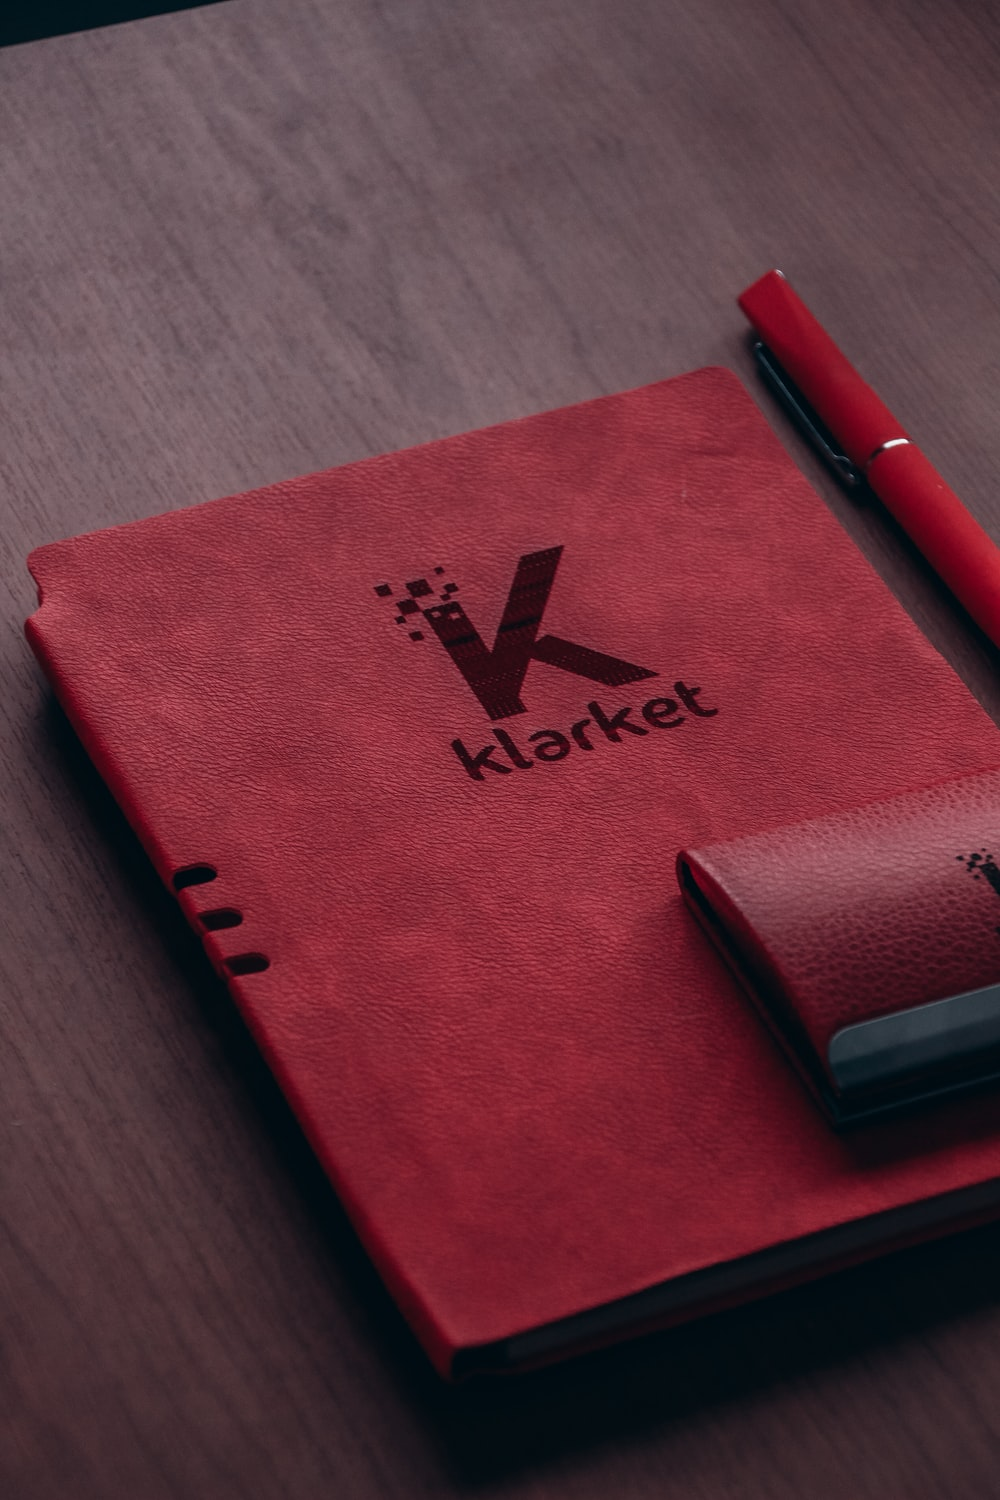 red book with purple click pen